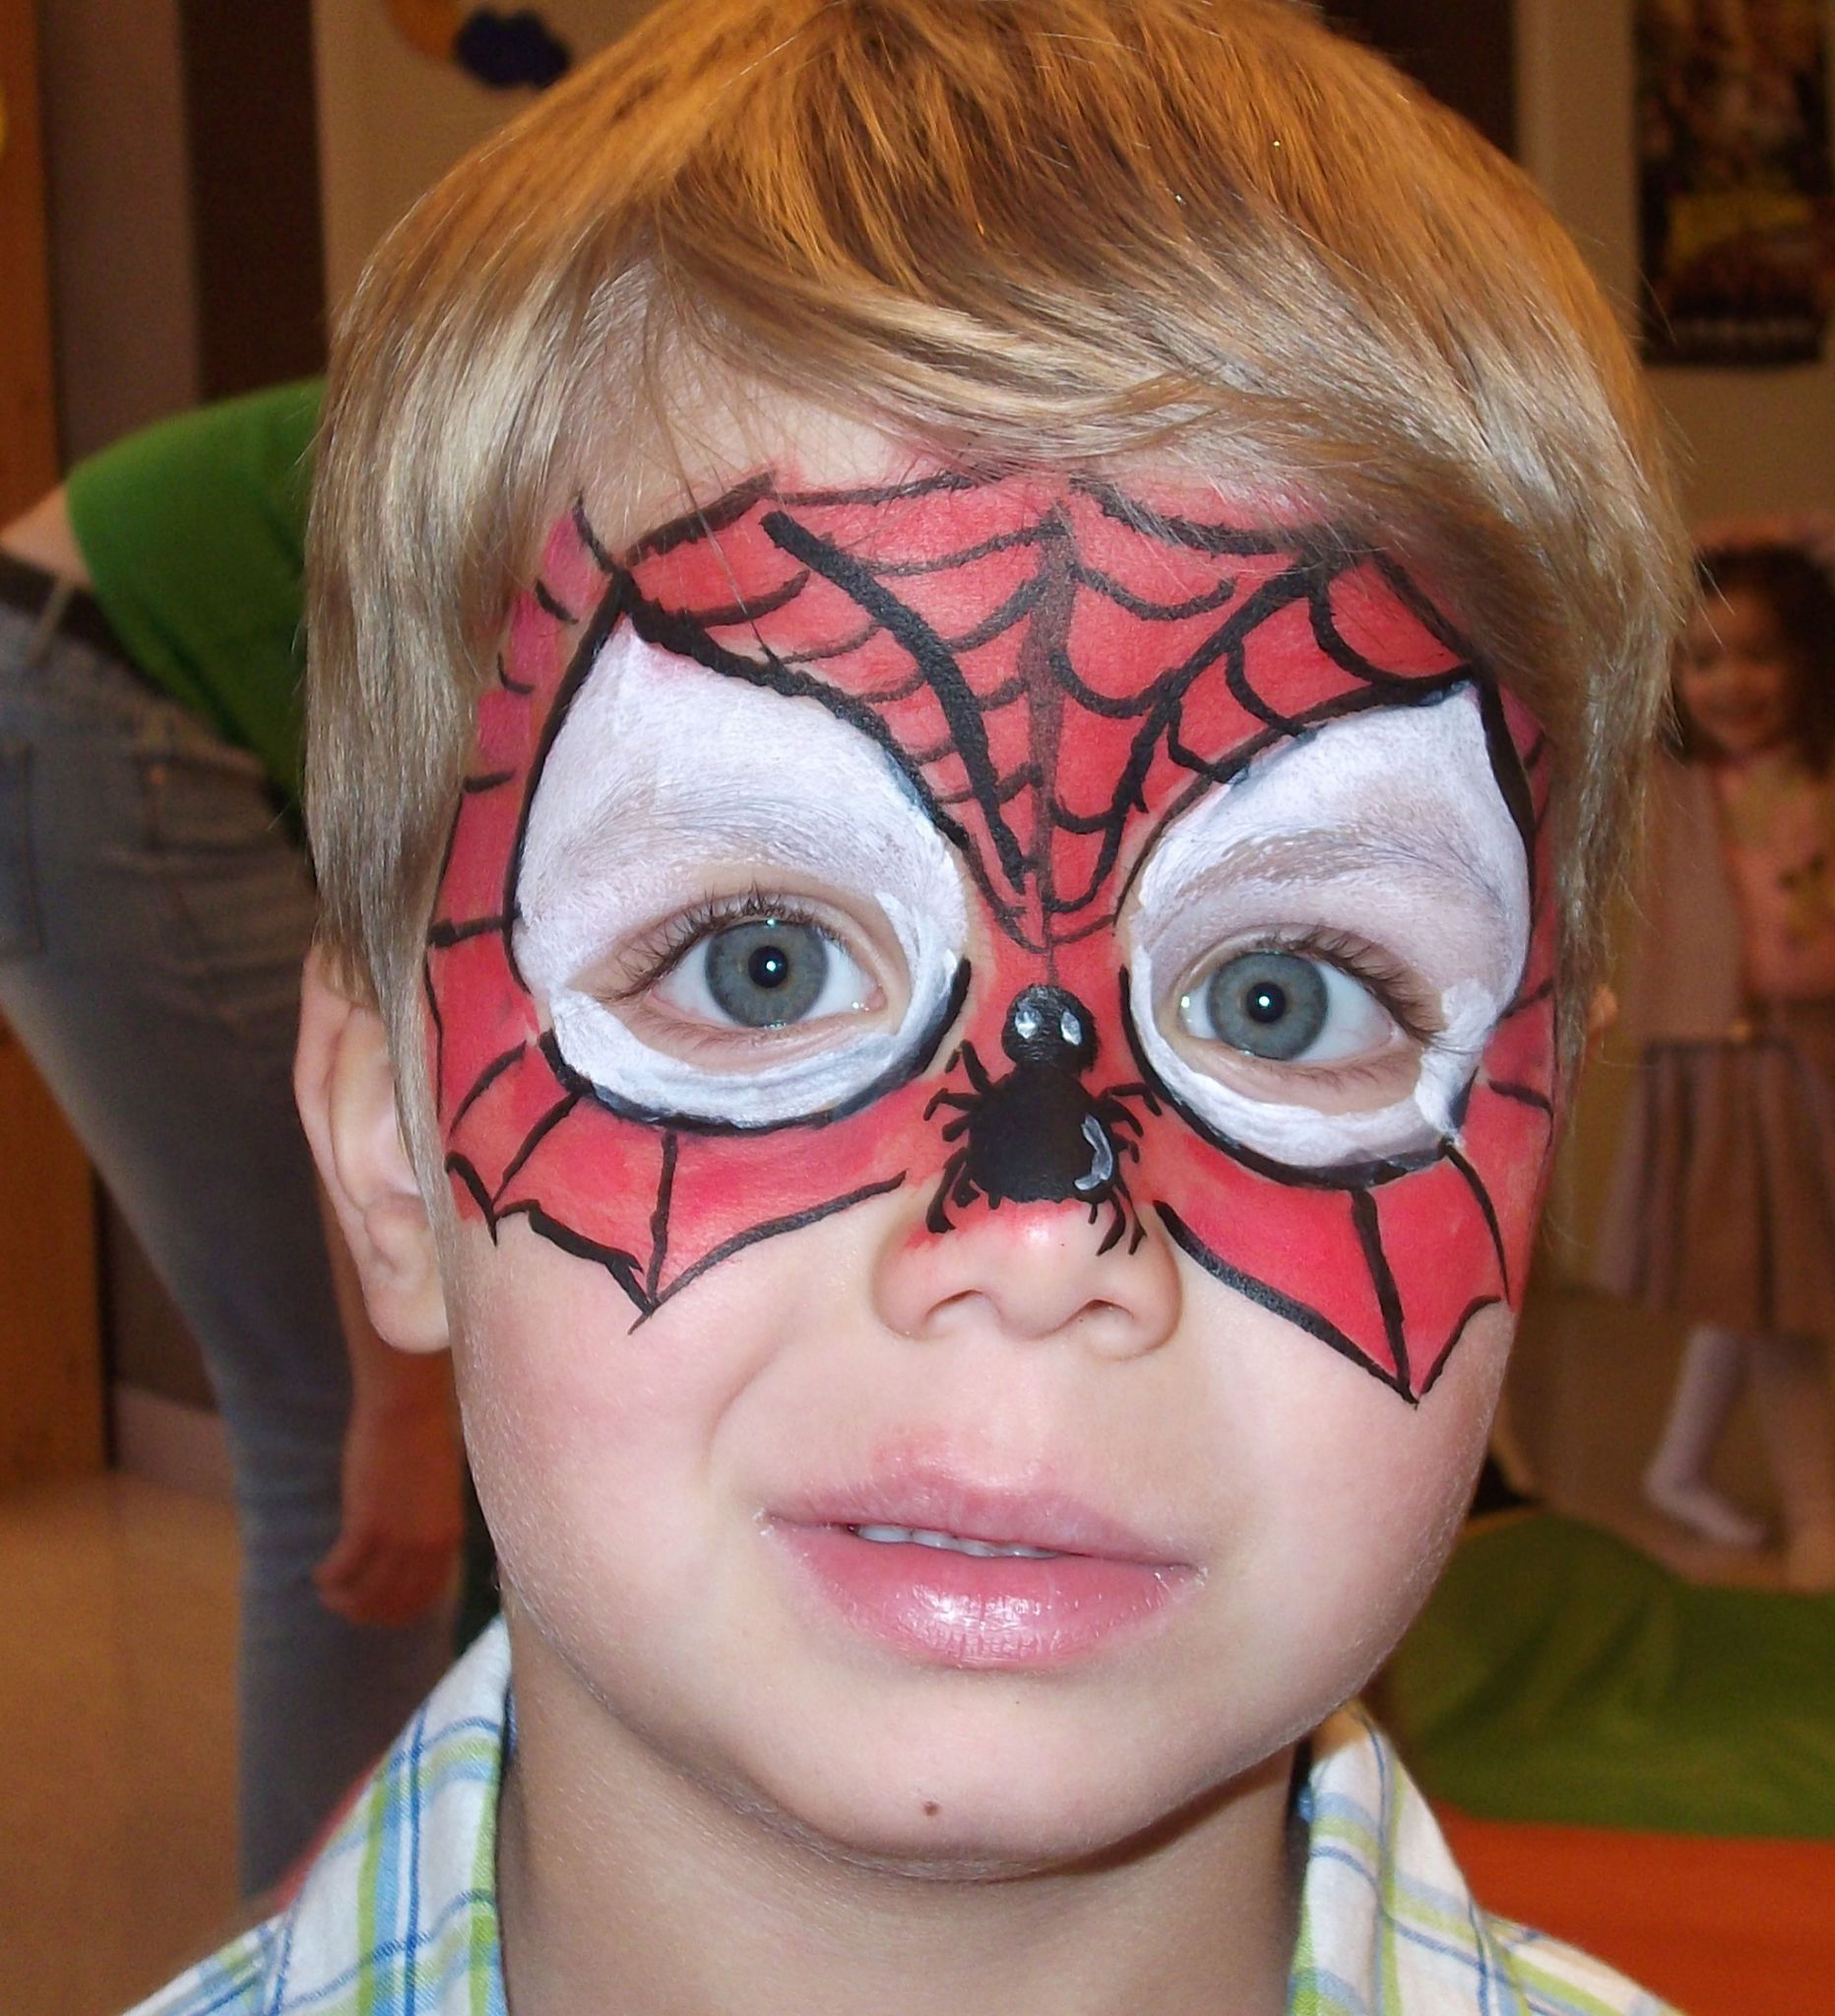 maquillage spiderman facile - Google Search | Costumes, Crafts, Painting